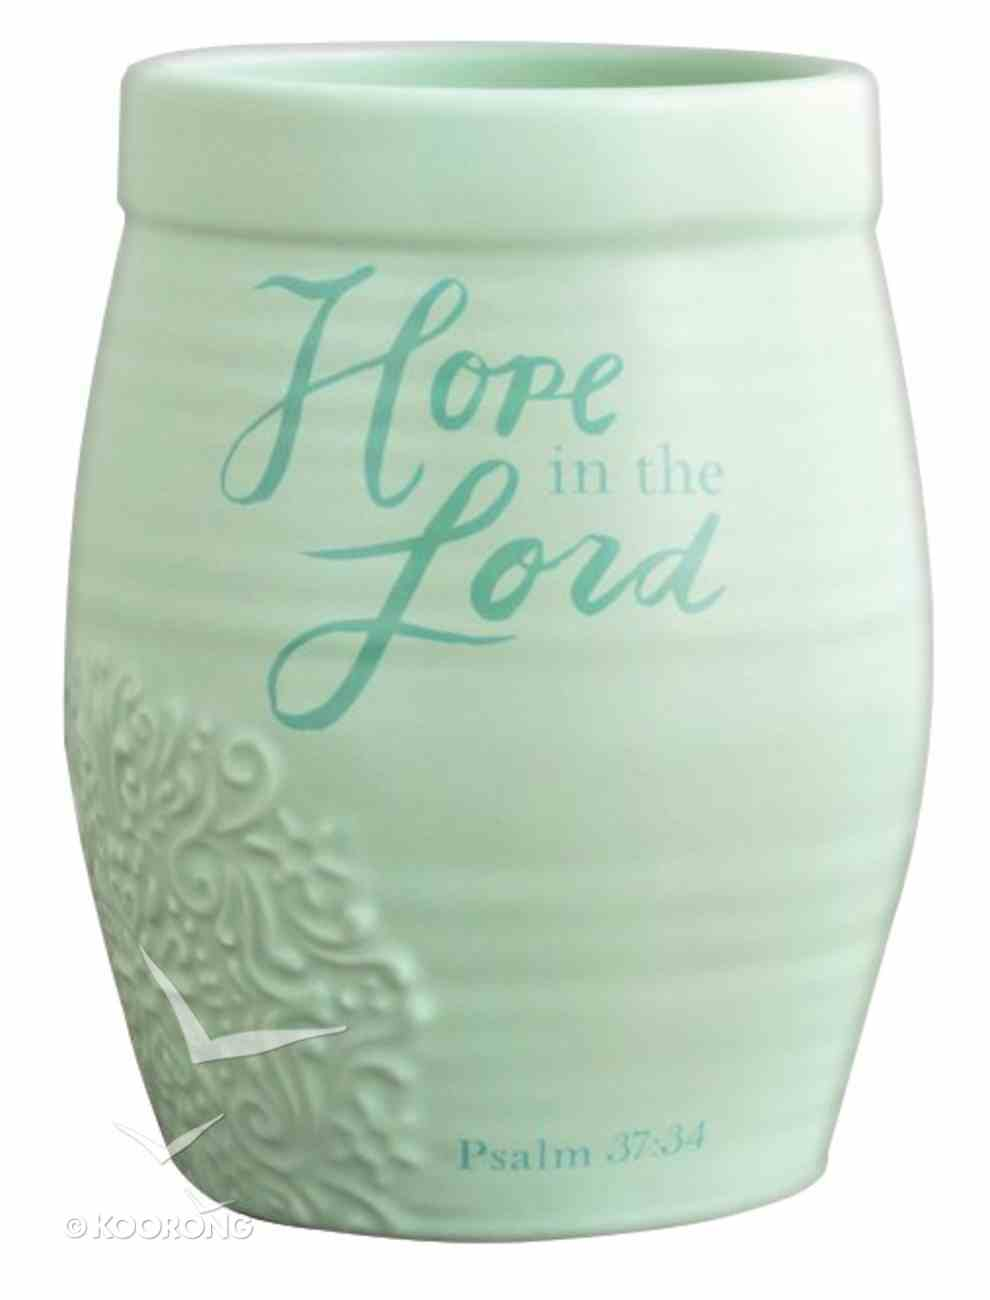 Ceramic Stoneware Vase: Hope in the Lord Mint Green (Psalm 37:34) Homeware